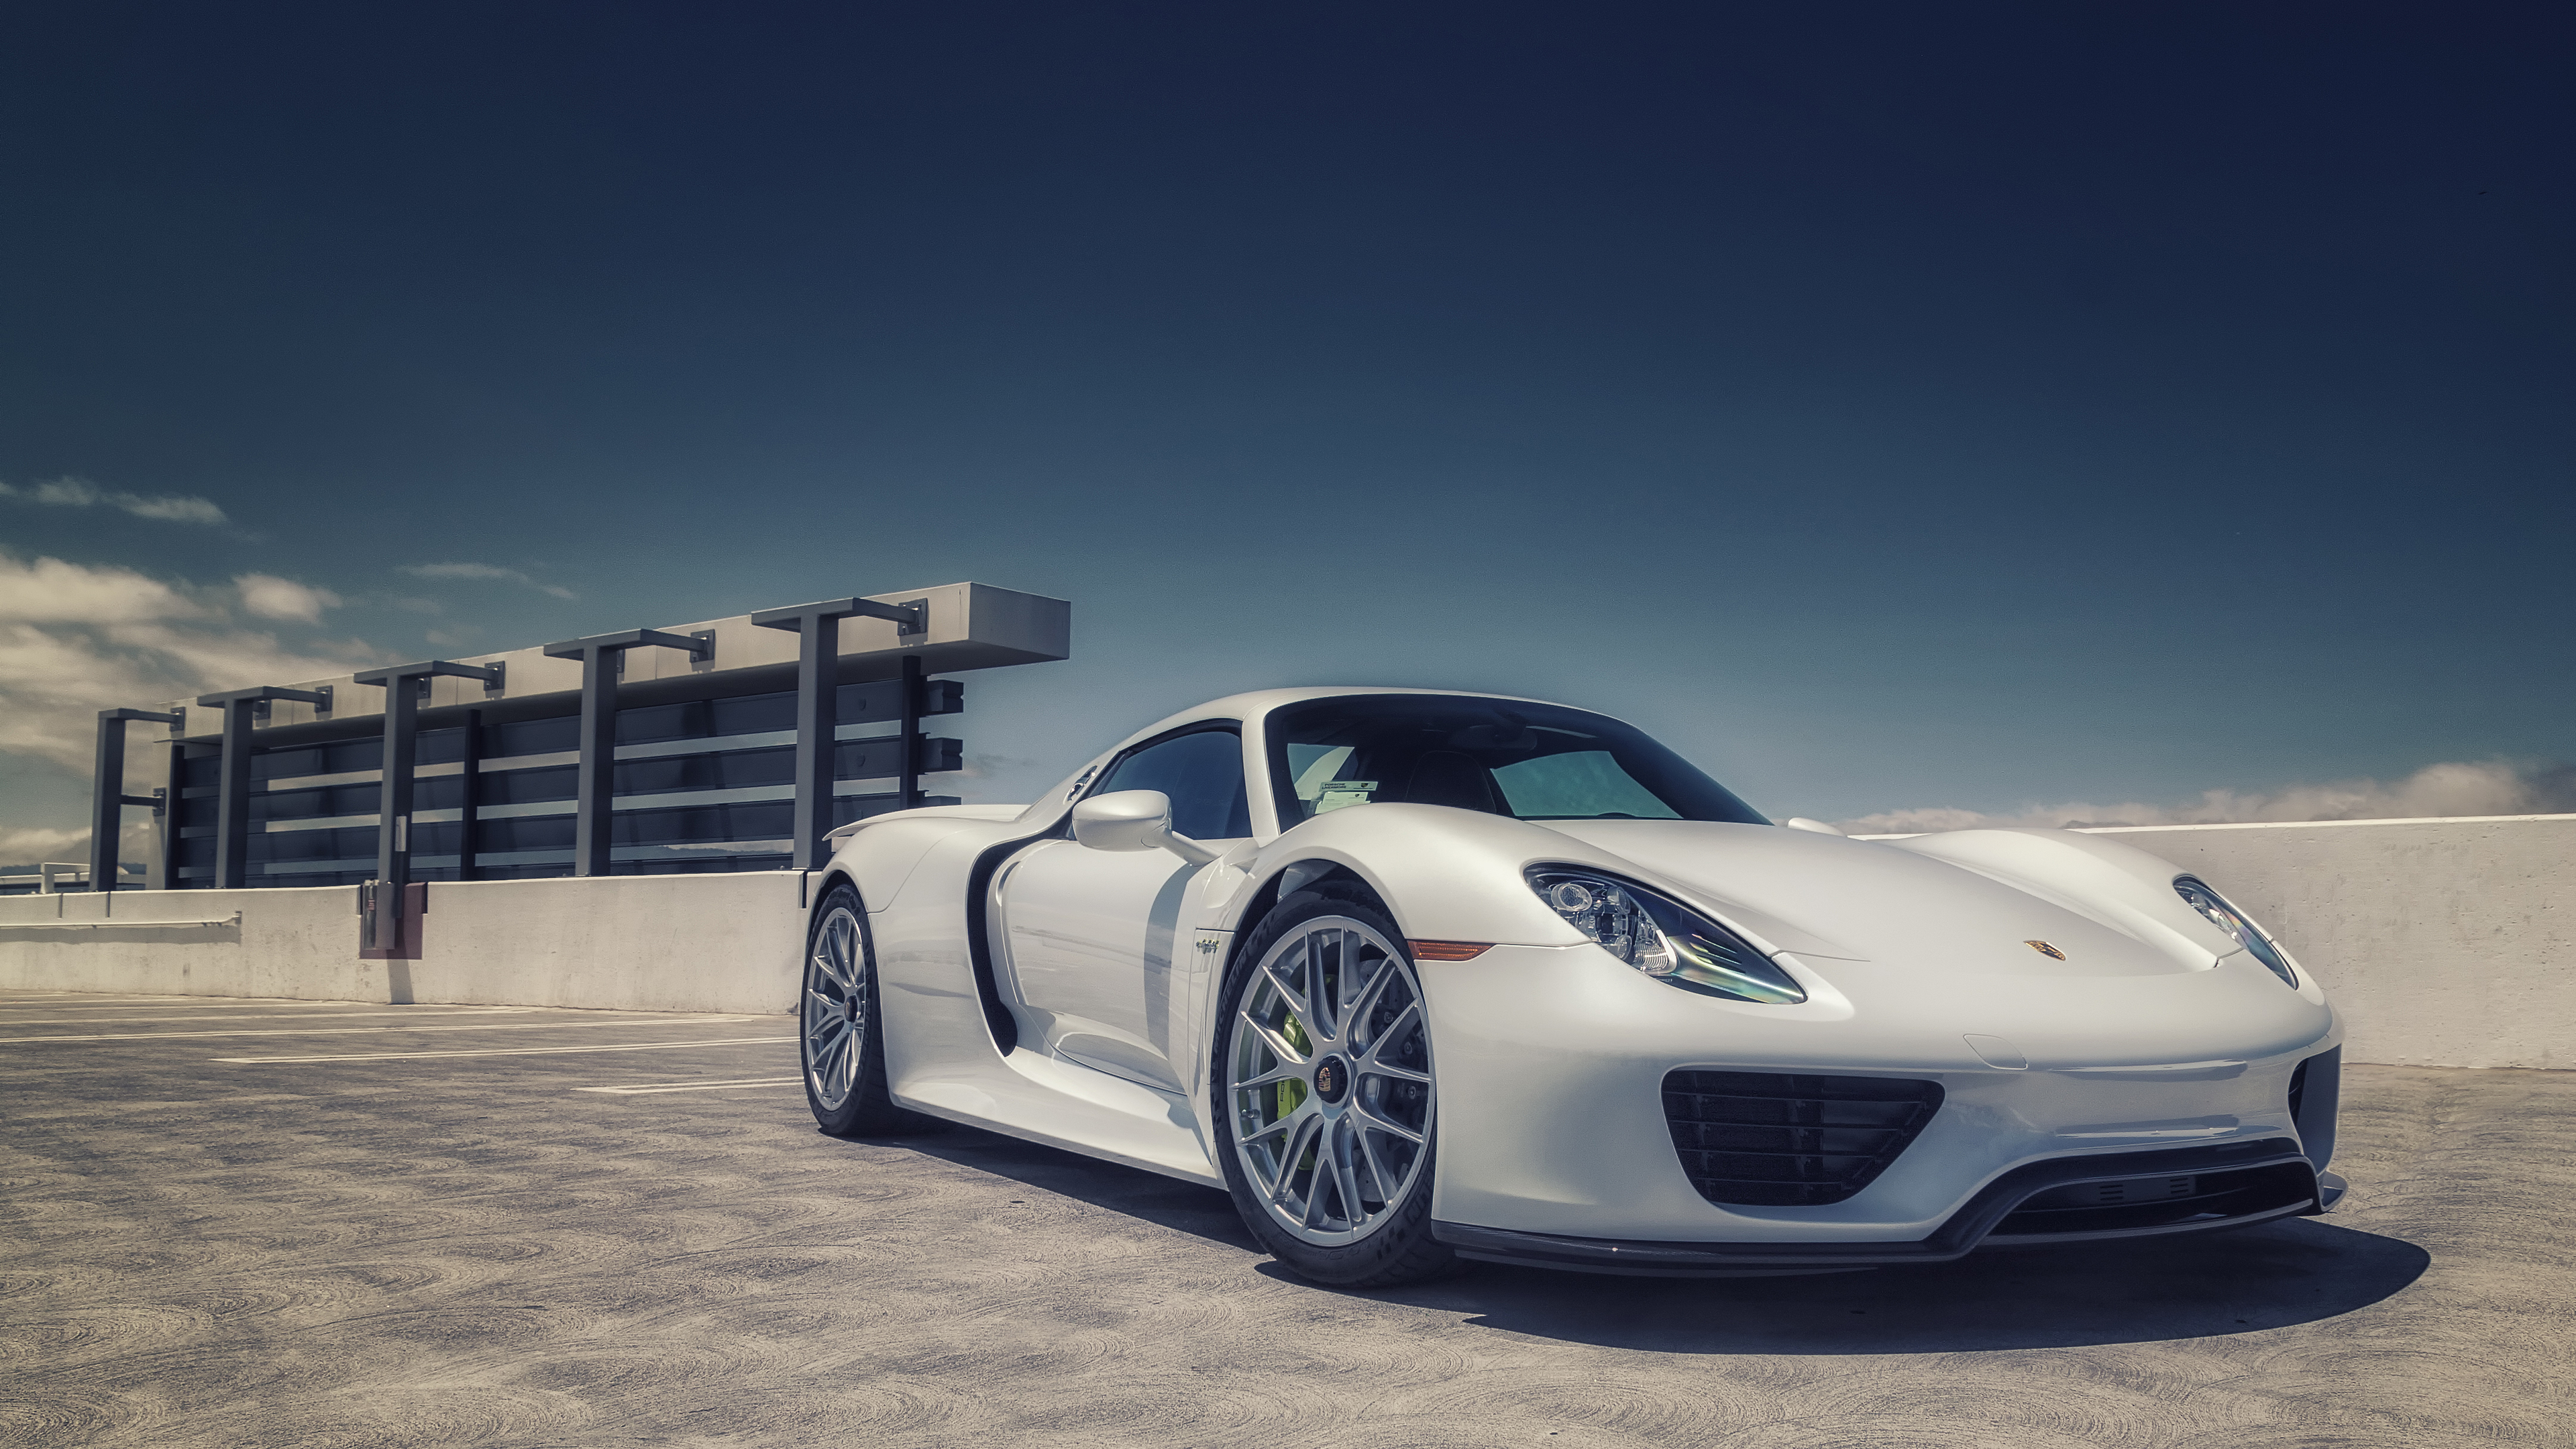 3840x2160 porsche 918 spyder 4k hd 4k wallpapers. Black Bedroom Furniture Sets. Home Design Ideas